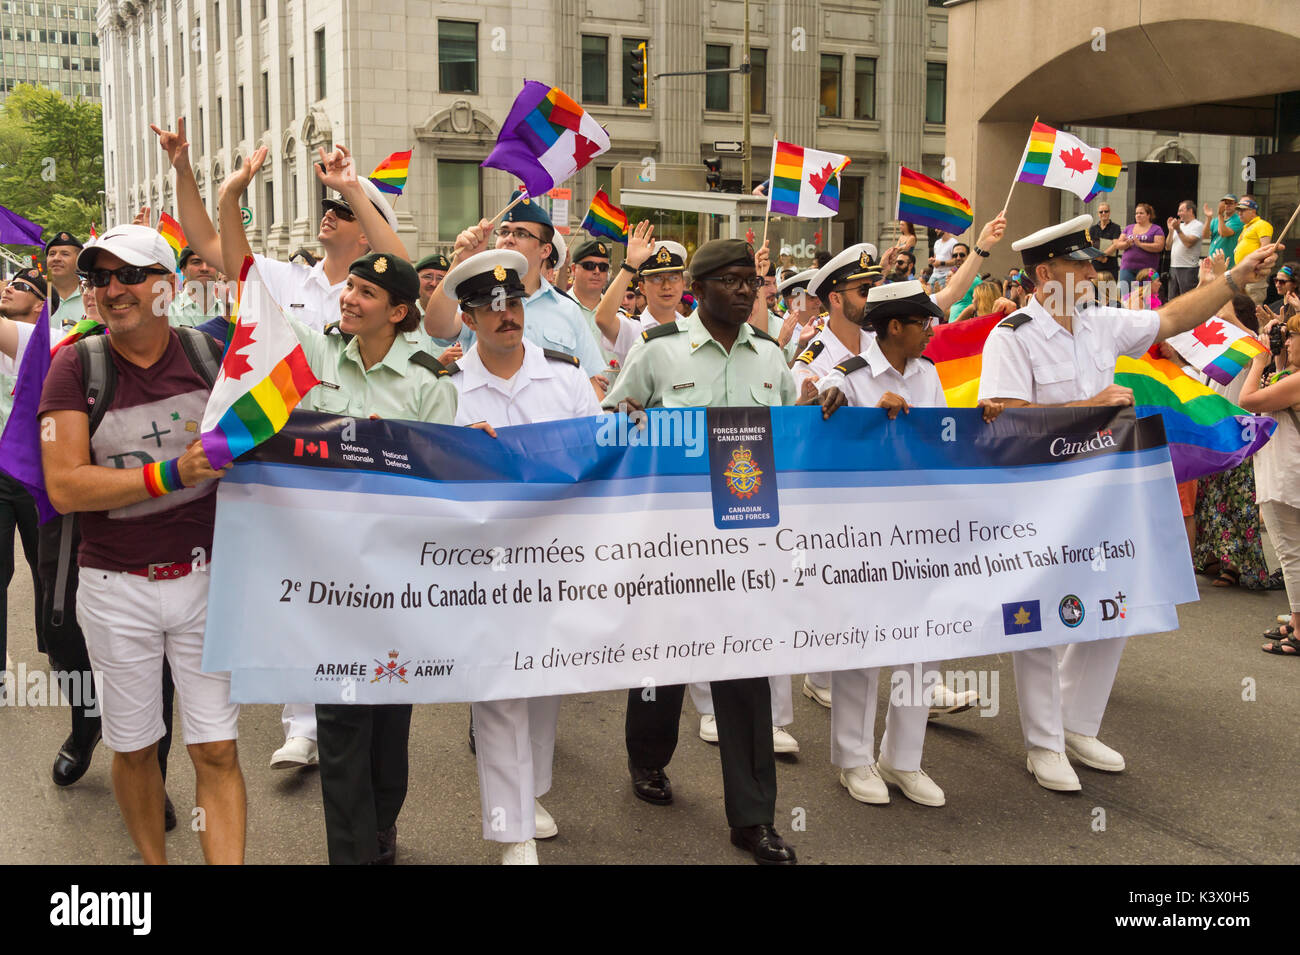 Montreal, CANADA - 20 August 2017: 2nd Canadian Division and Joint task Force from Canadian Armed Forces at Montreal Gay Pride Parade - Stock Image